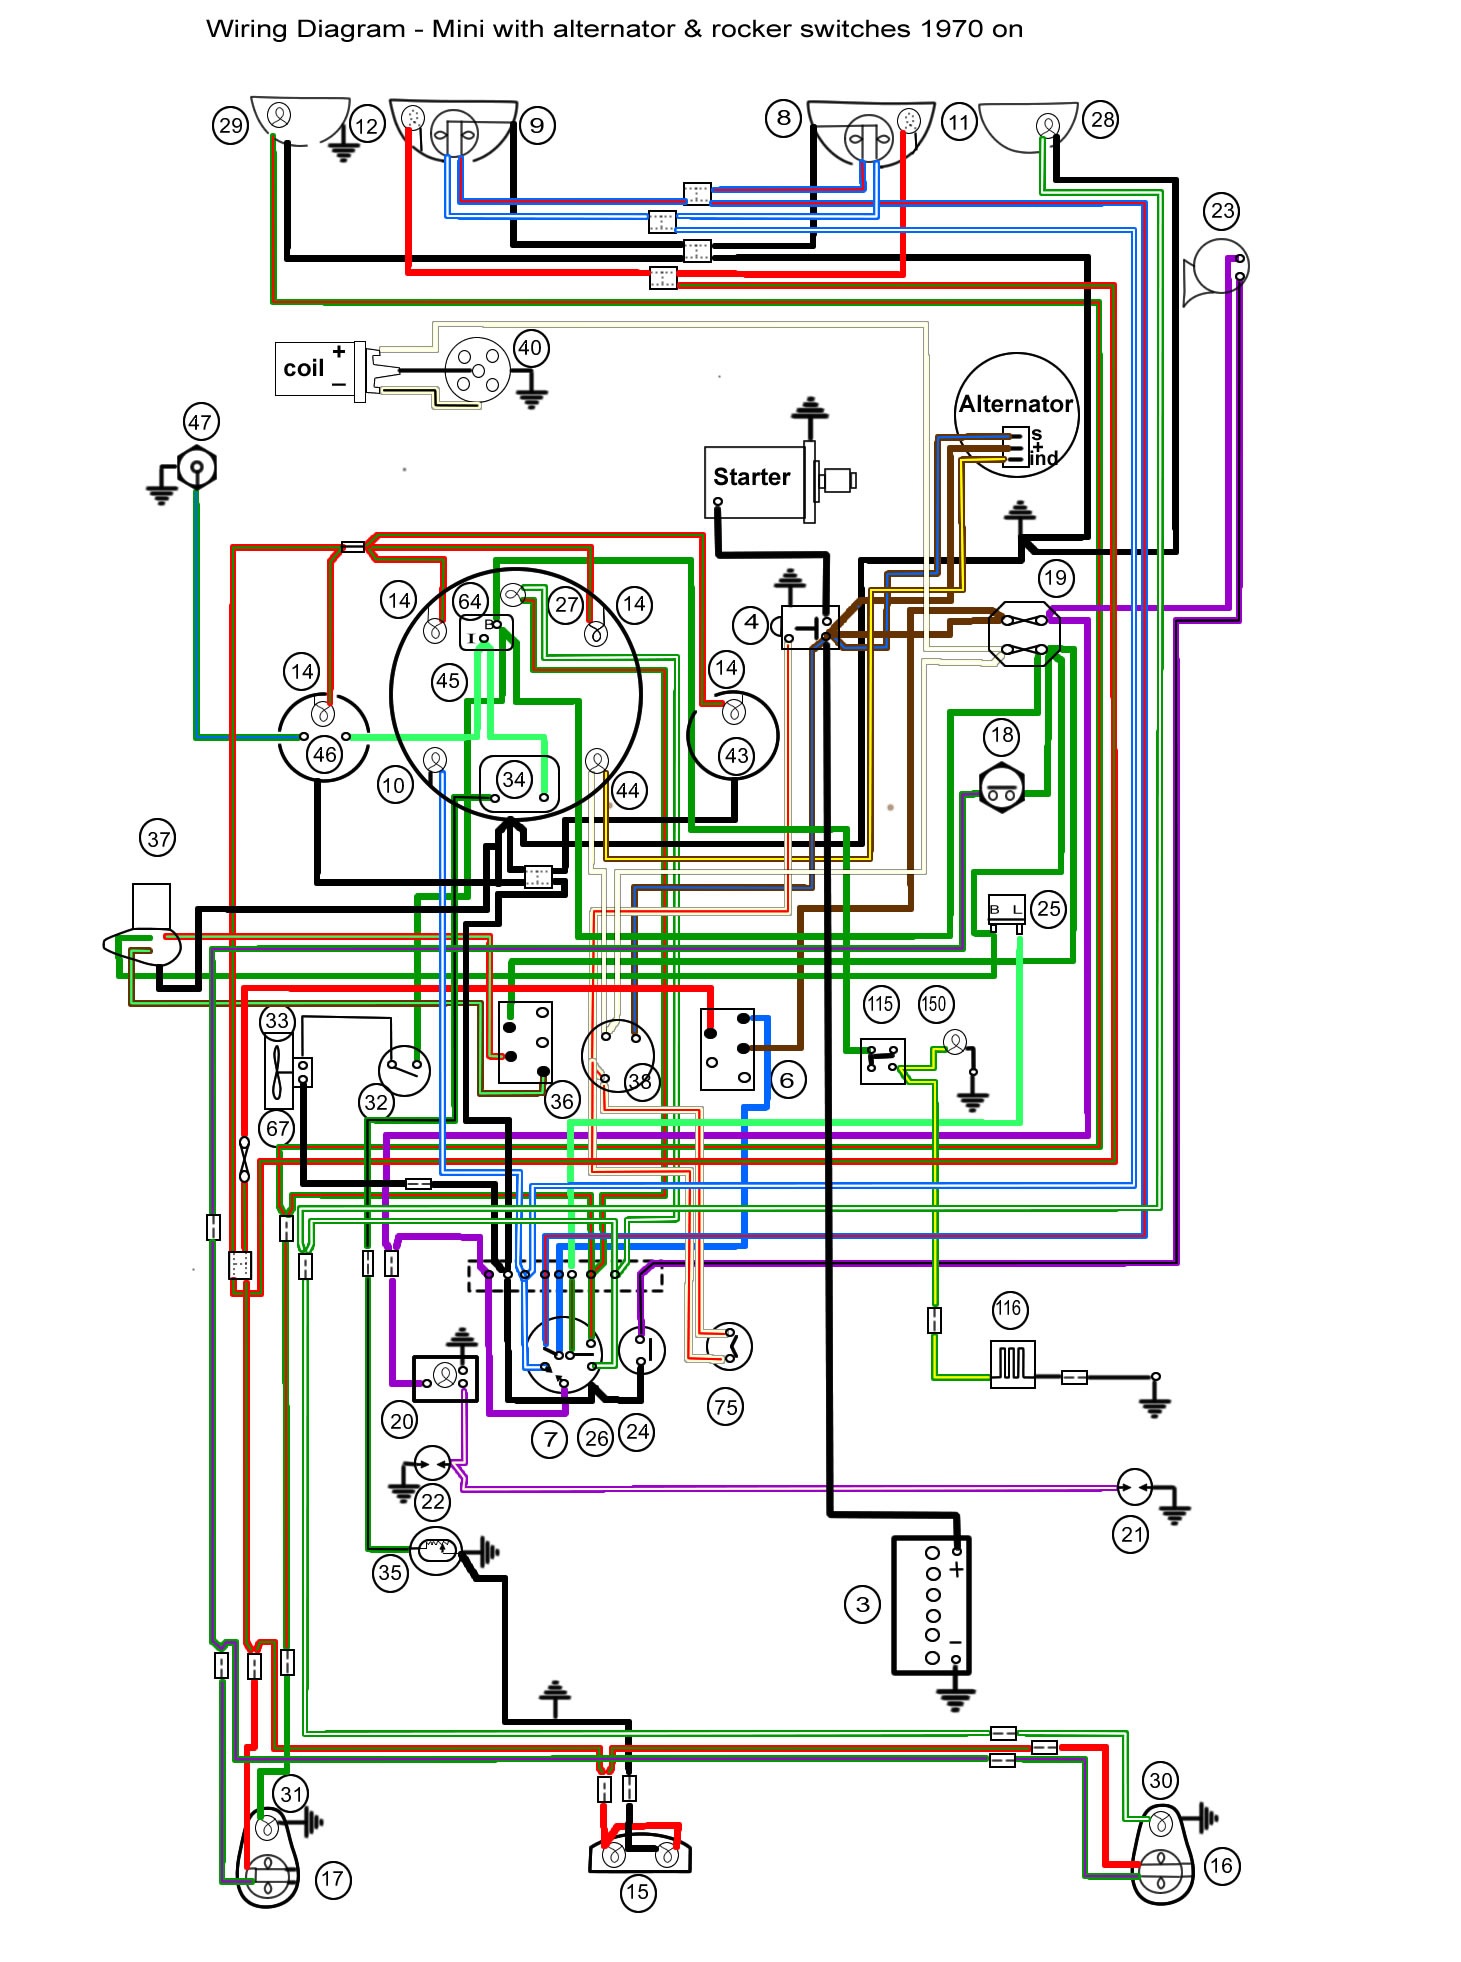 2008 mini cooper wiring diagram wiring diagram libraries mini wiring diagram wiring diagram schematicsmini wiring diagrams unlimited access to wiring diagram information